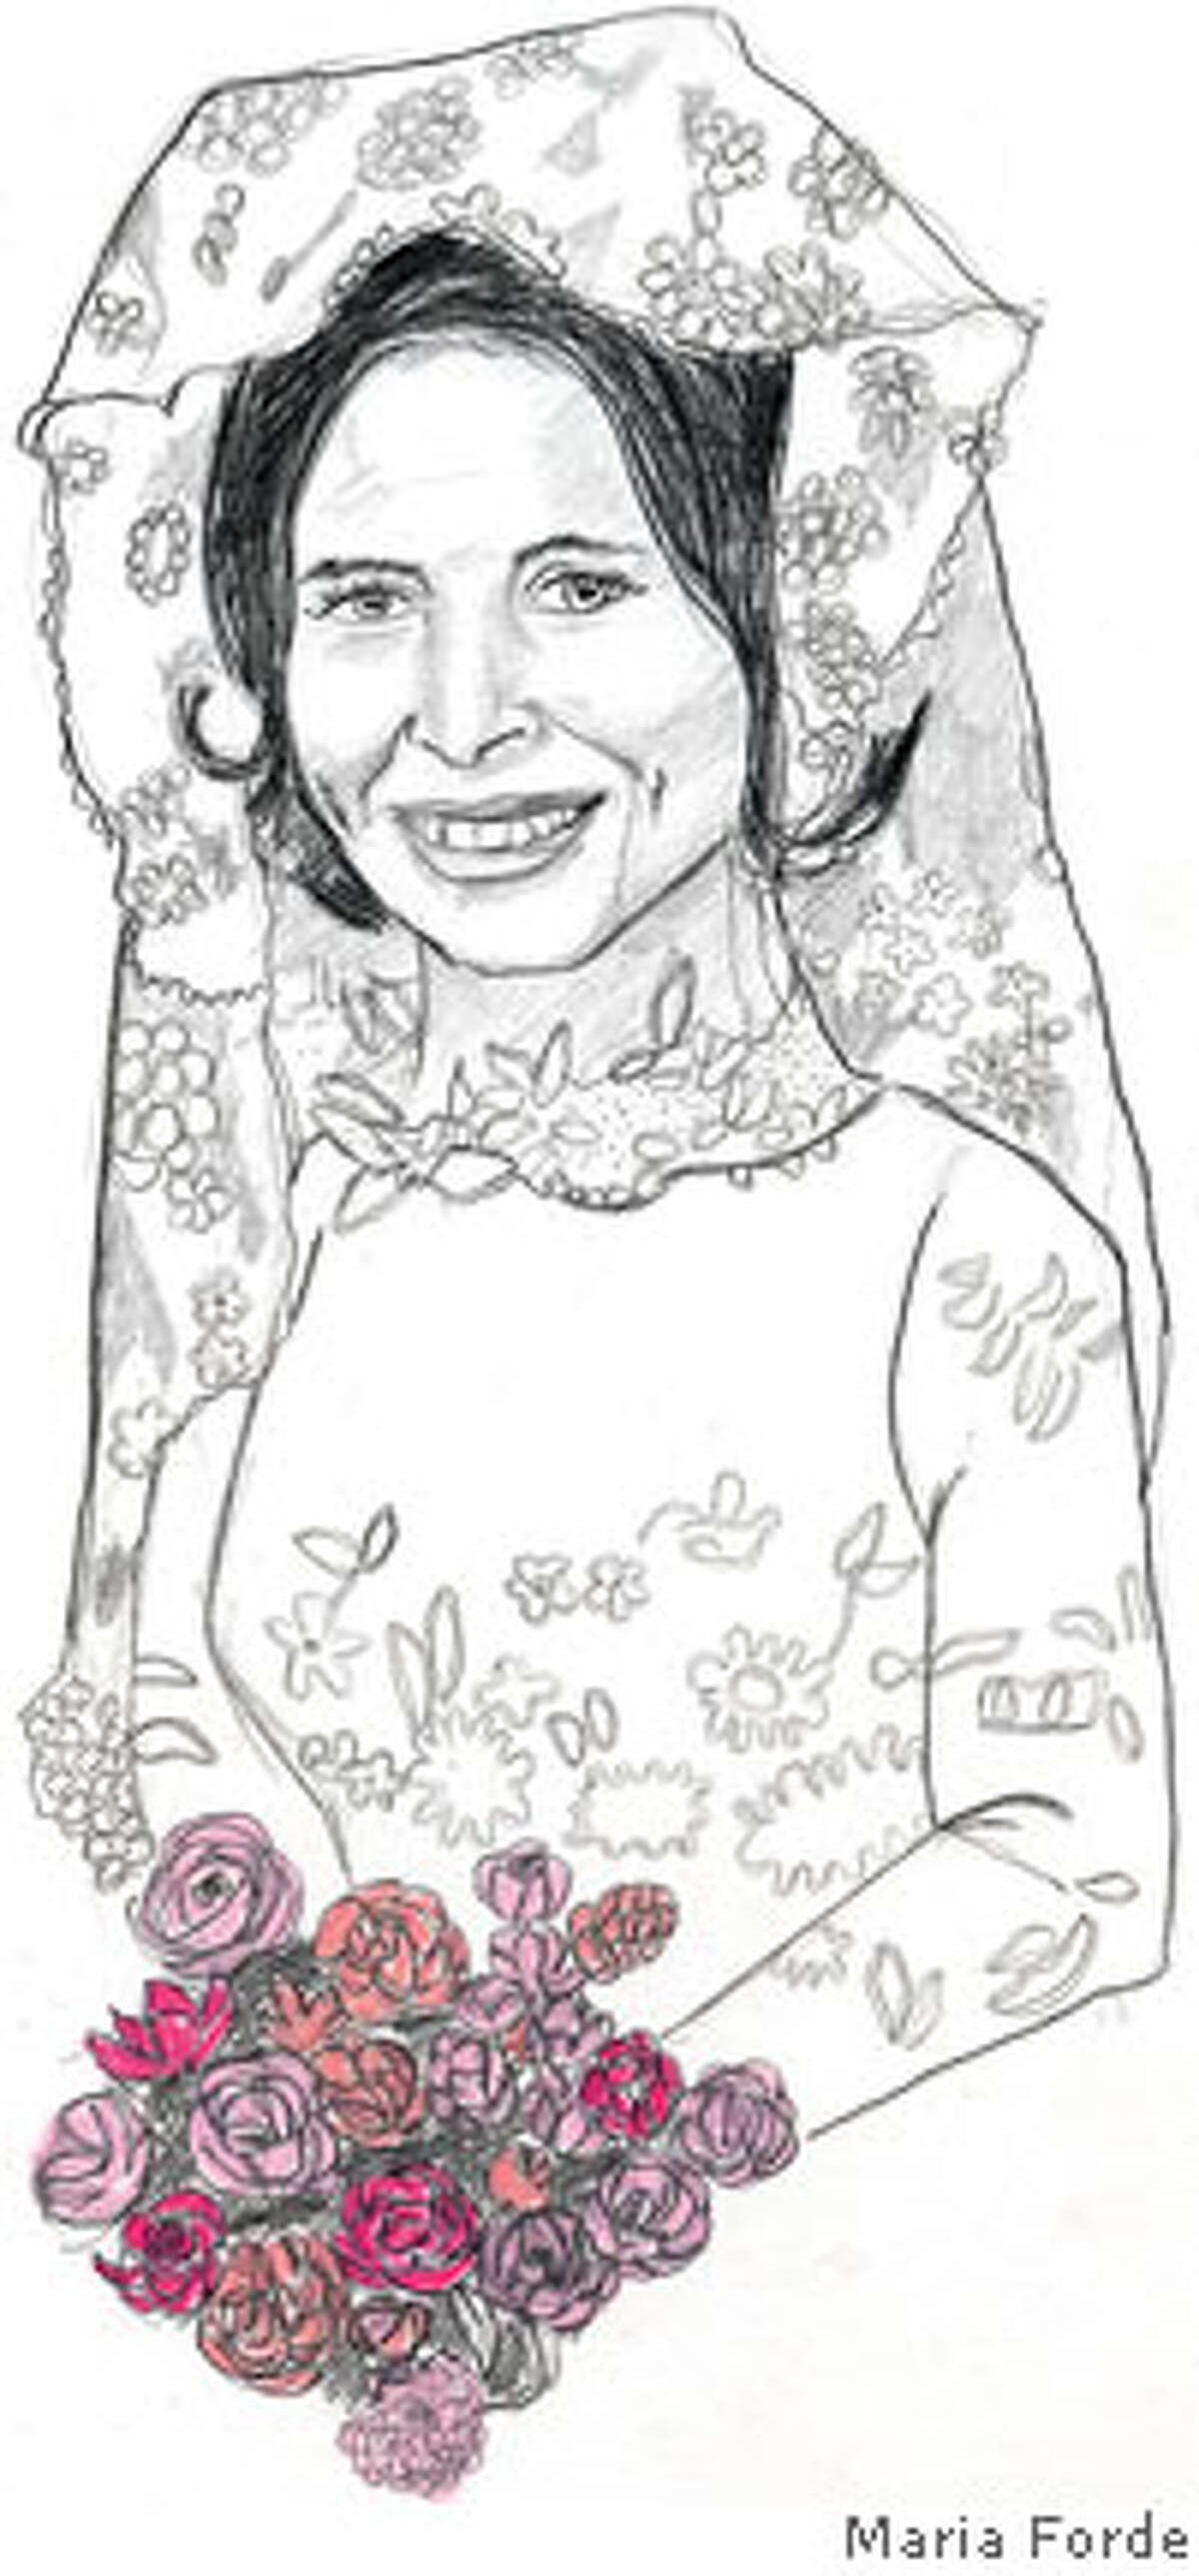 Portrait of the artist's mom, taken from the handbill for Maria Forde's